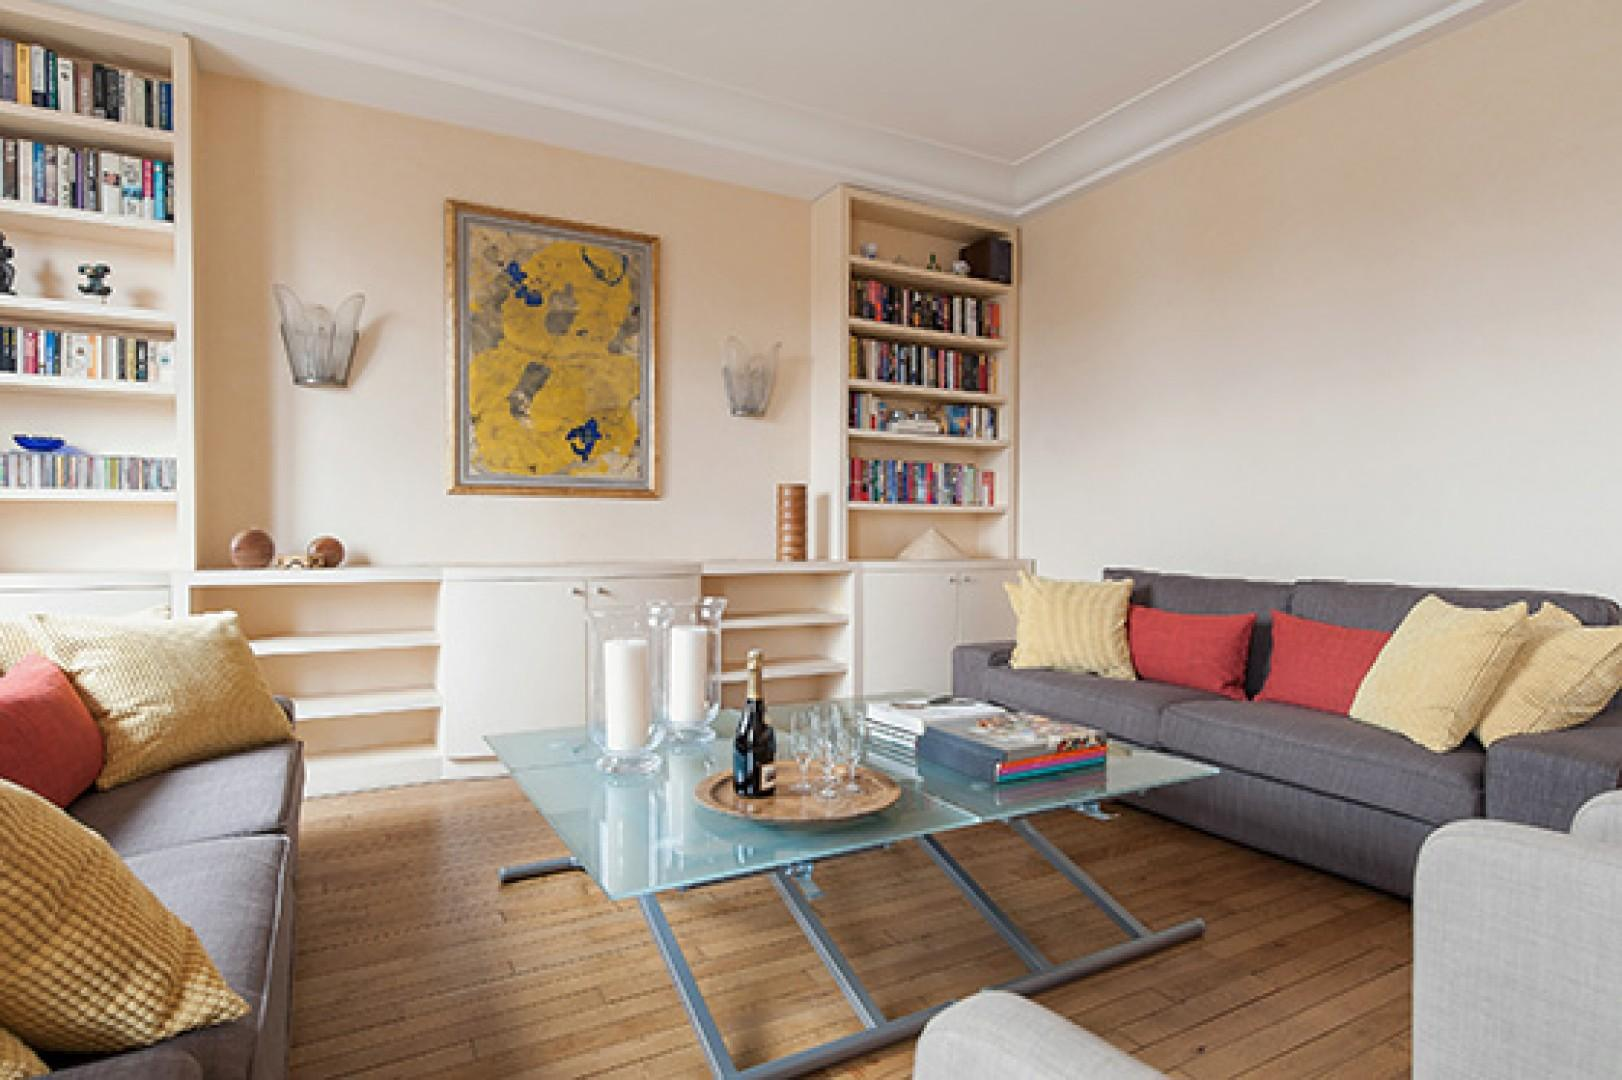 A perfect space for conversation with family and friends